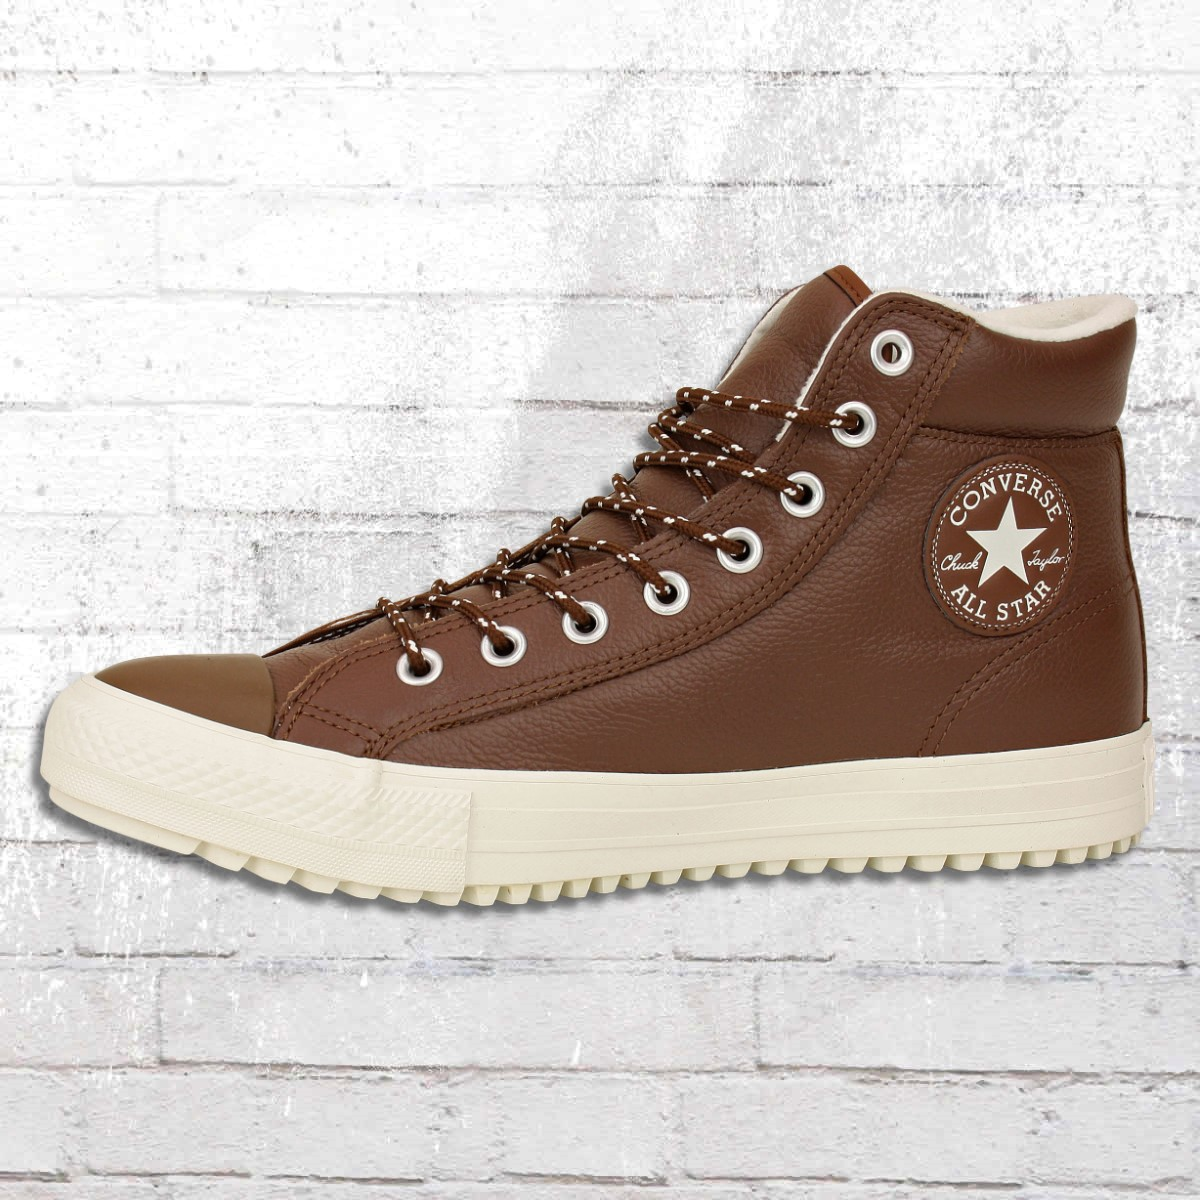 huge selection of 9fe76 25bc4 Jetzt bestellen | Converse Winter Schuhe Unisex Leder Chucks ...